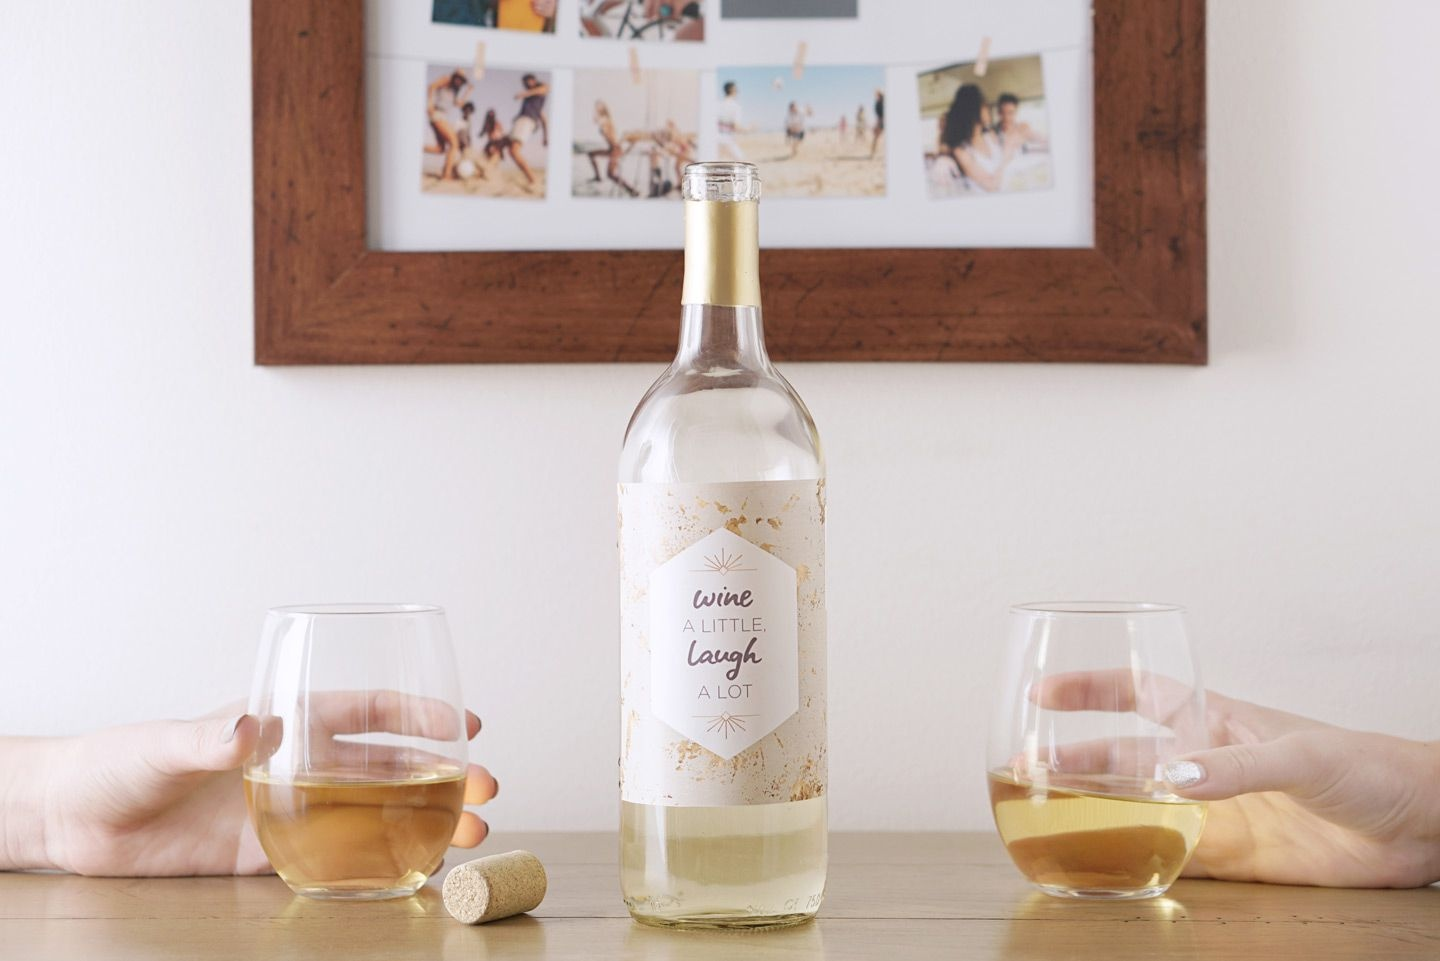 Free Wine Label Templates For Any Occassion - Free Printable Birthday Wine Labels